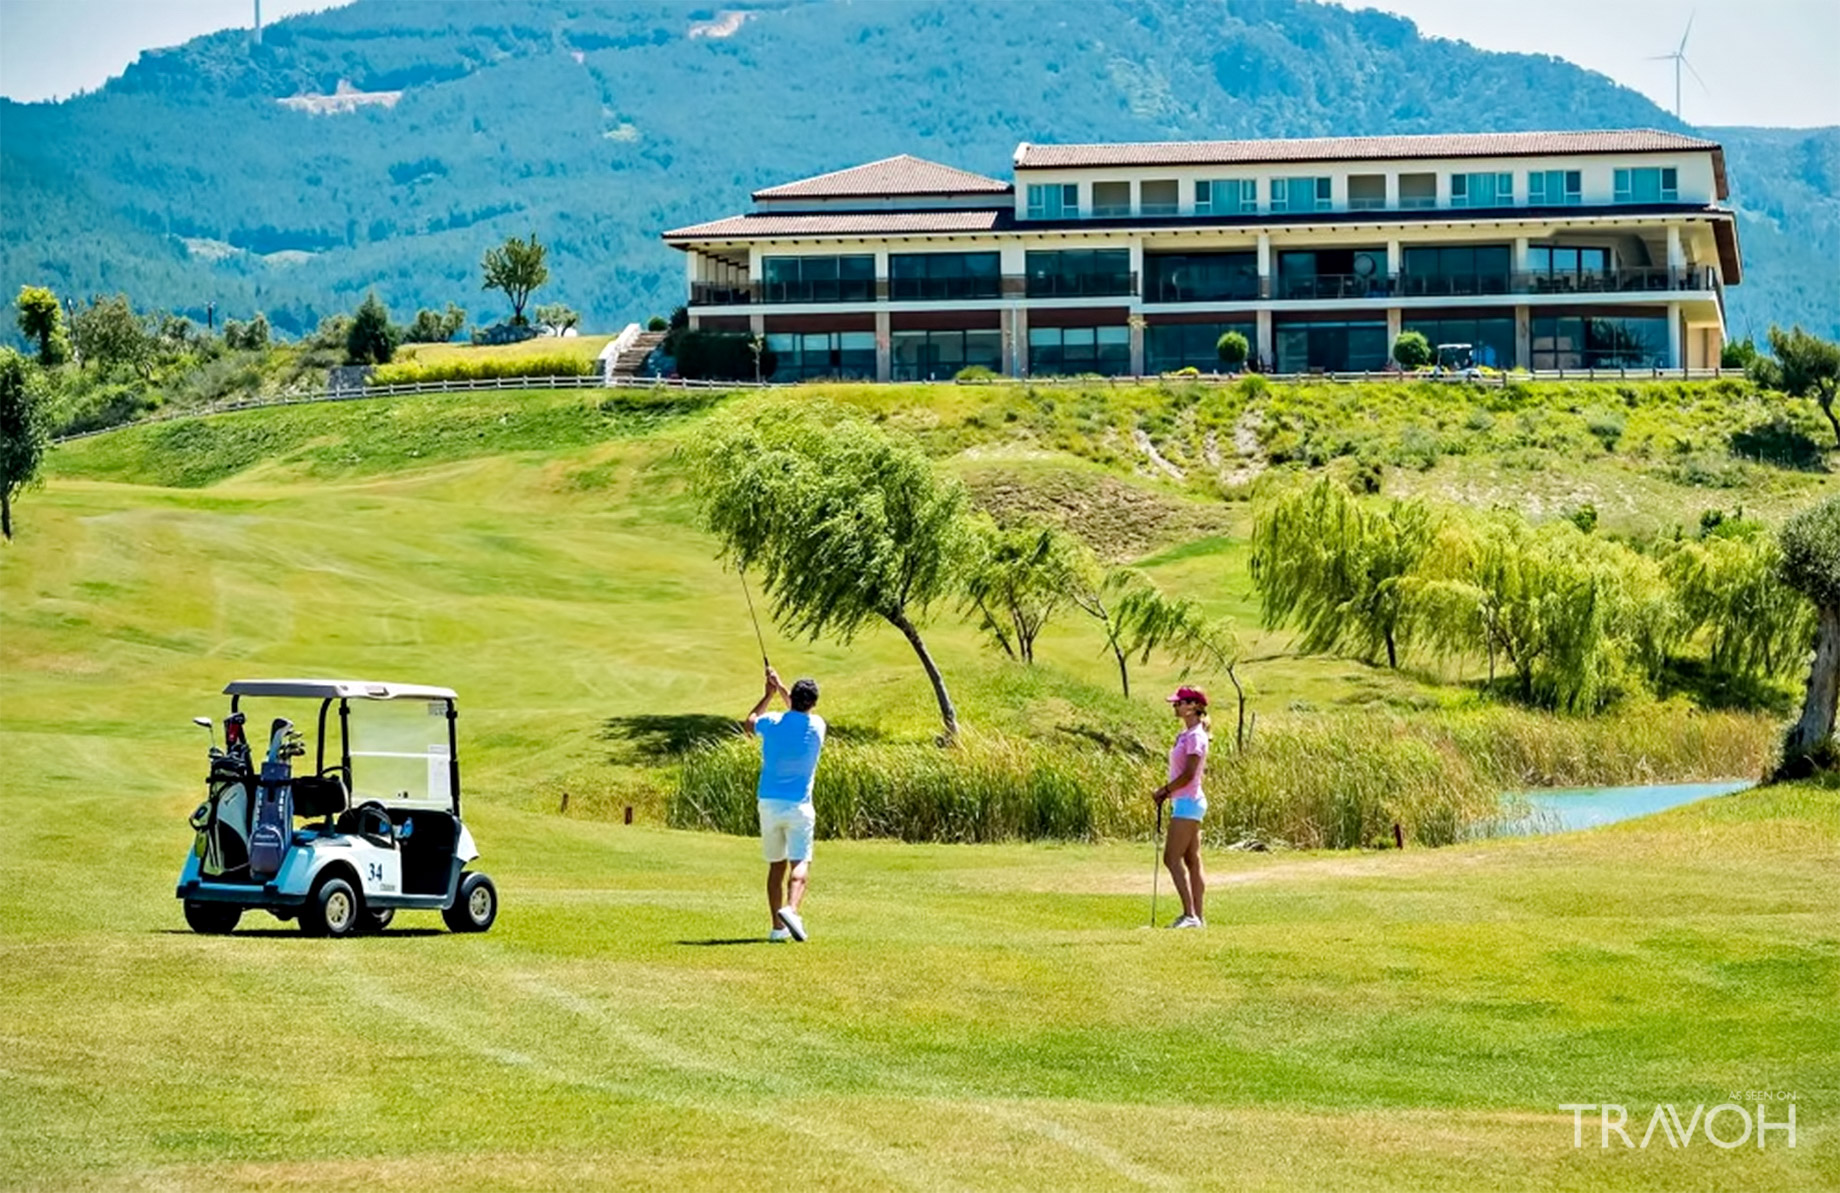 CLC World Turkey - Kusadasi Golf and Spa Resort - A Green Paradise